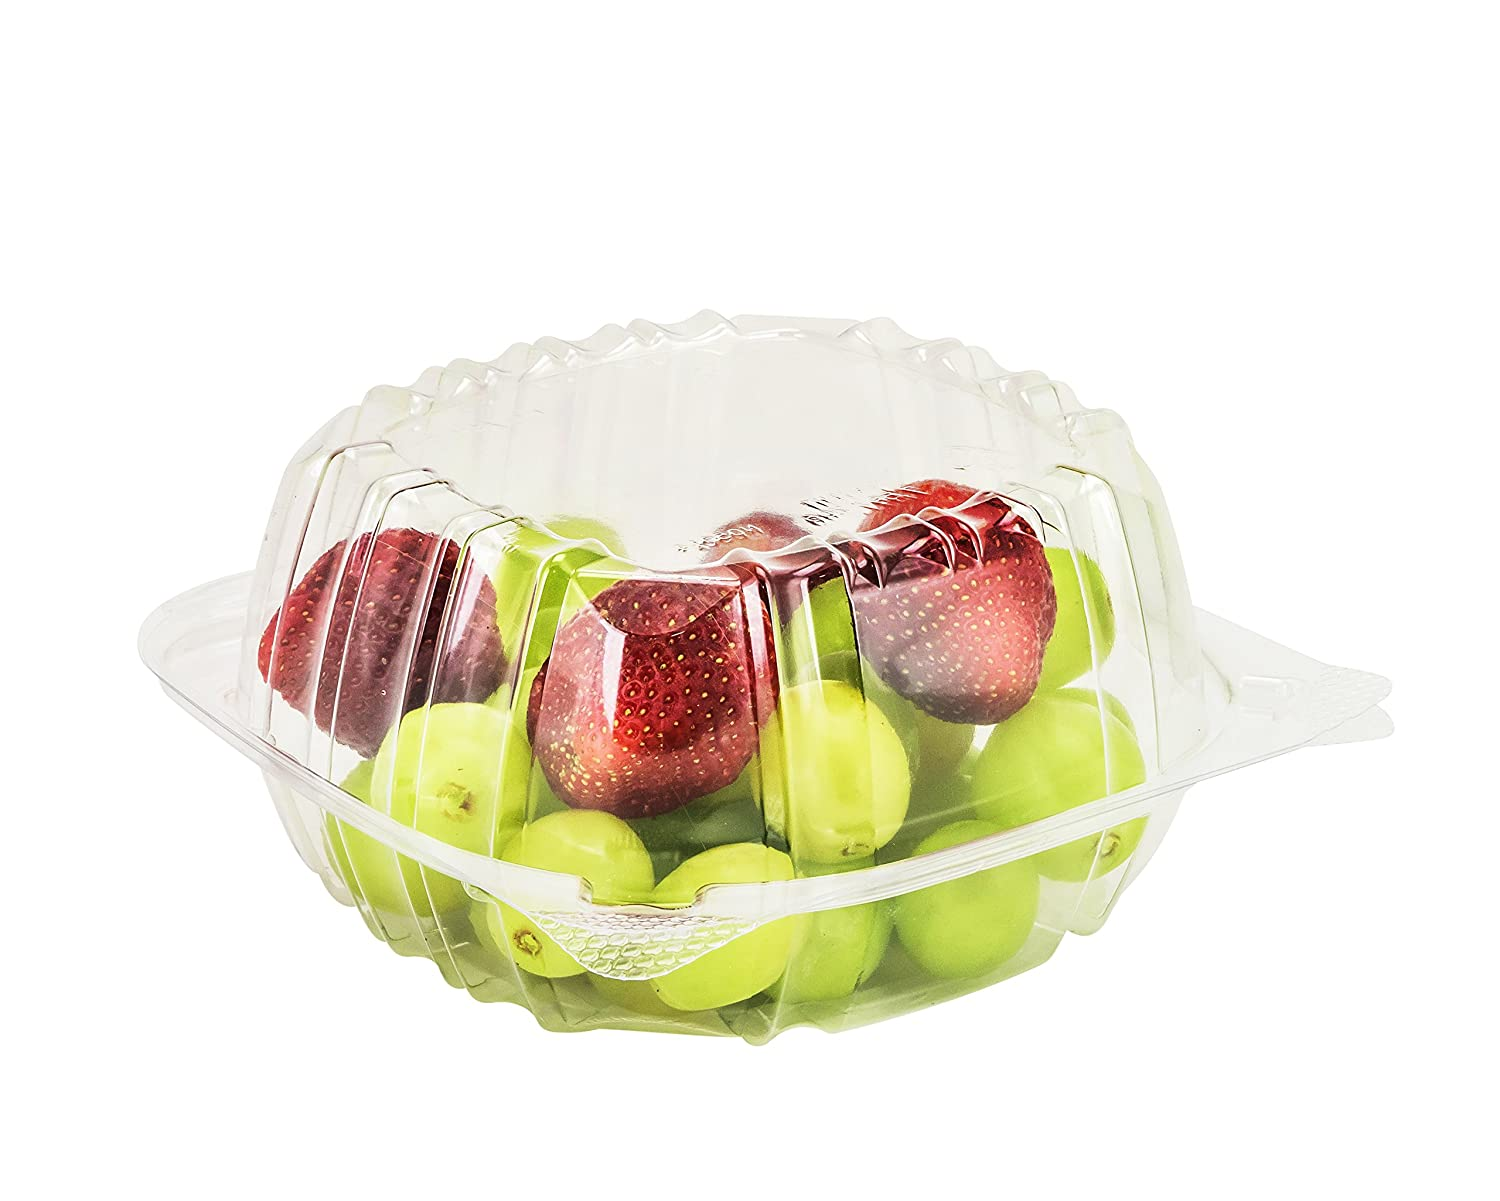 SafePro 6x6x3 Clear Hinged Lid Plastic Container, (CASE OF 50), Polyethylene Terephthalate Square Cold Clamshell Container + Skewers